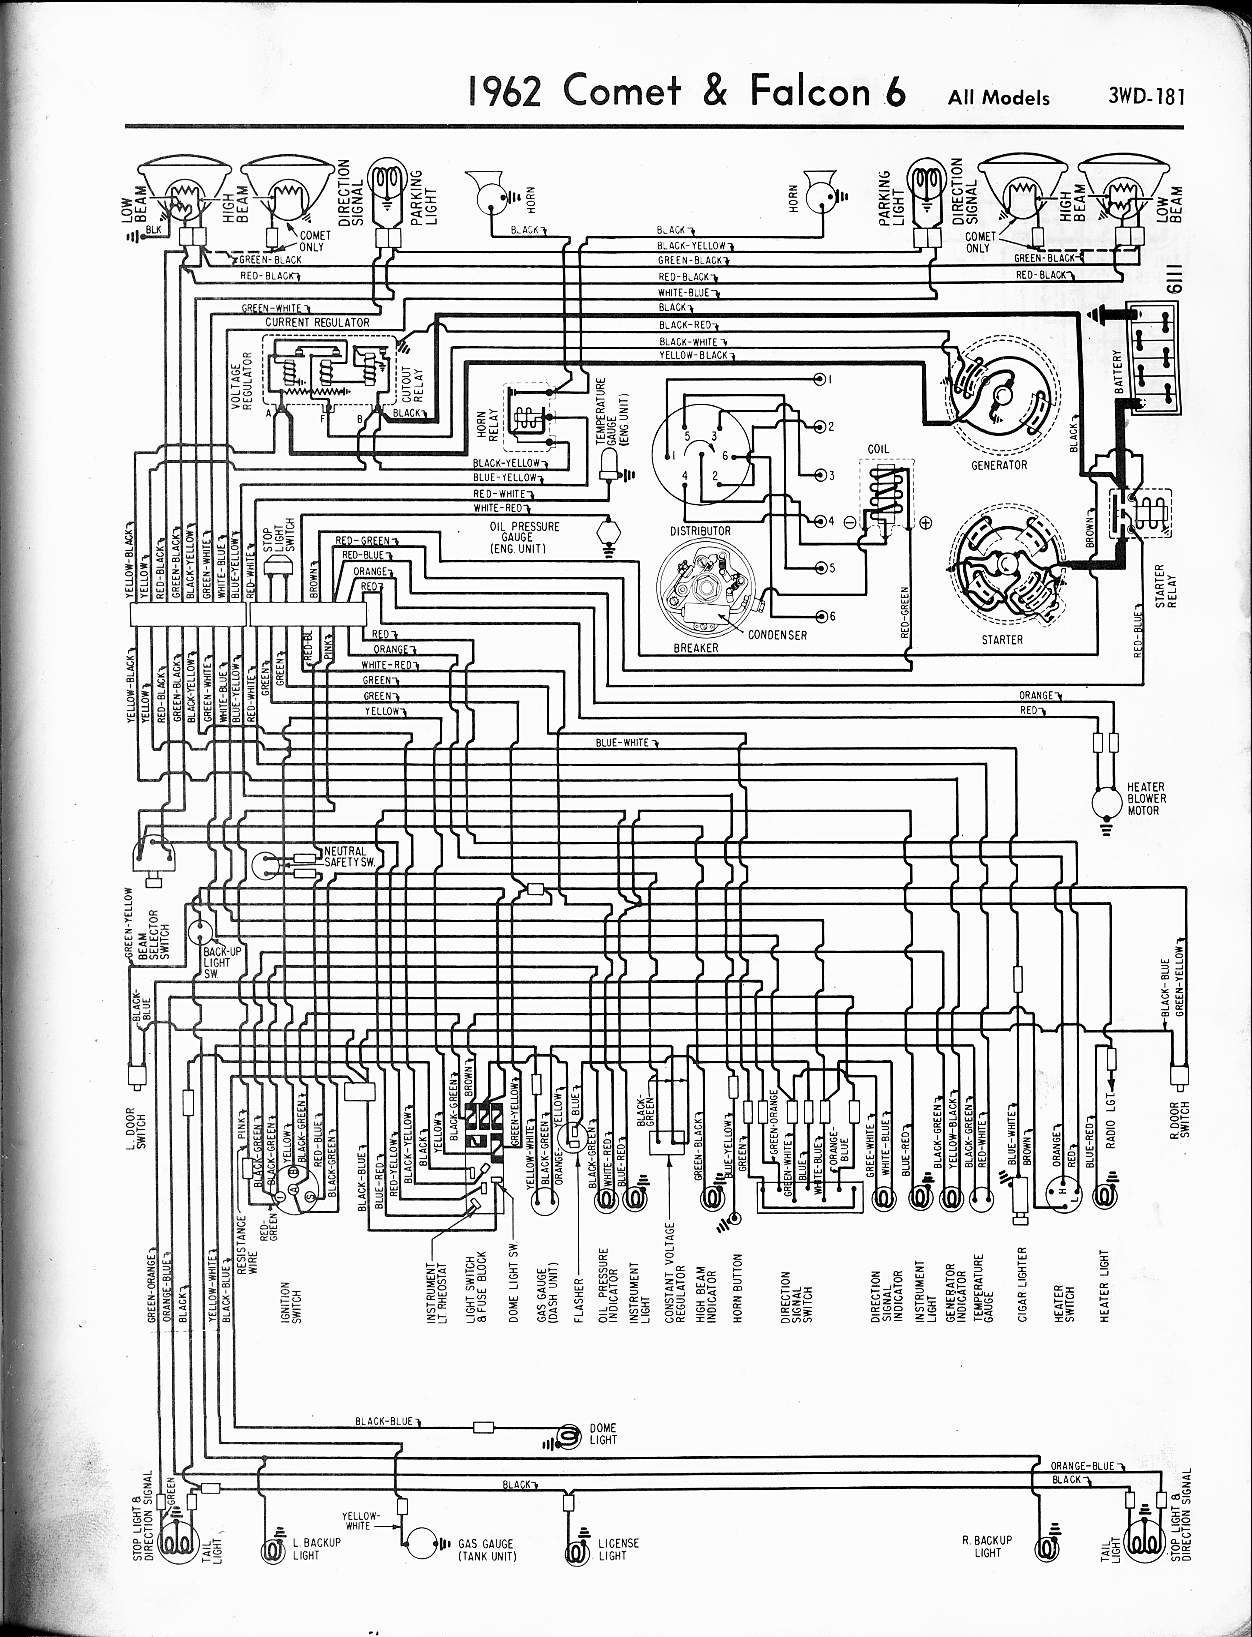 ba xr6 icc wiring diagram jzz30 1jz gte 57 65 ford diagrams